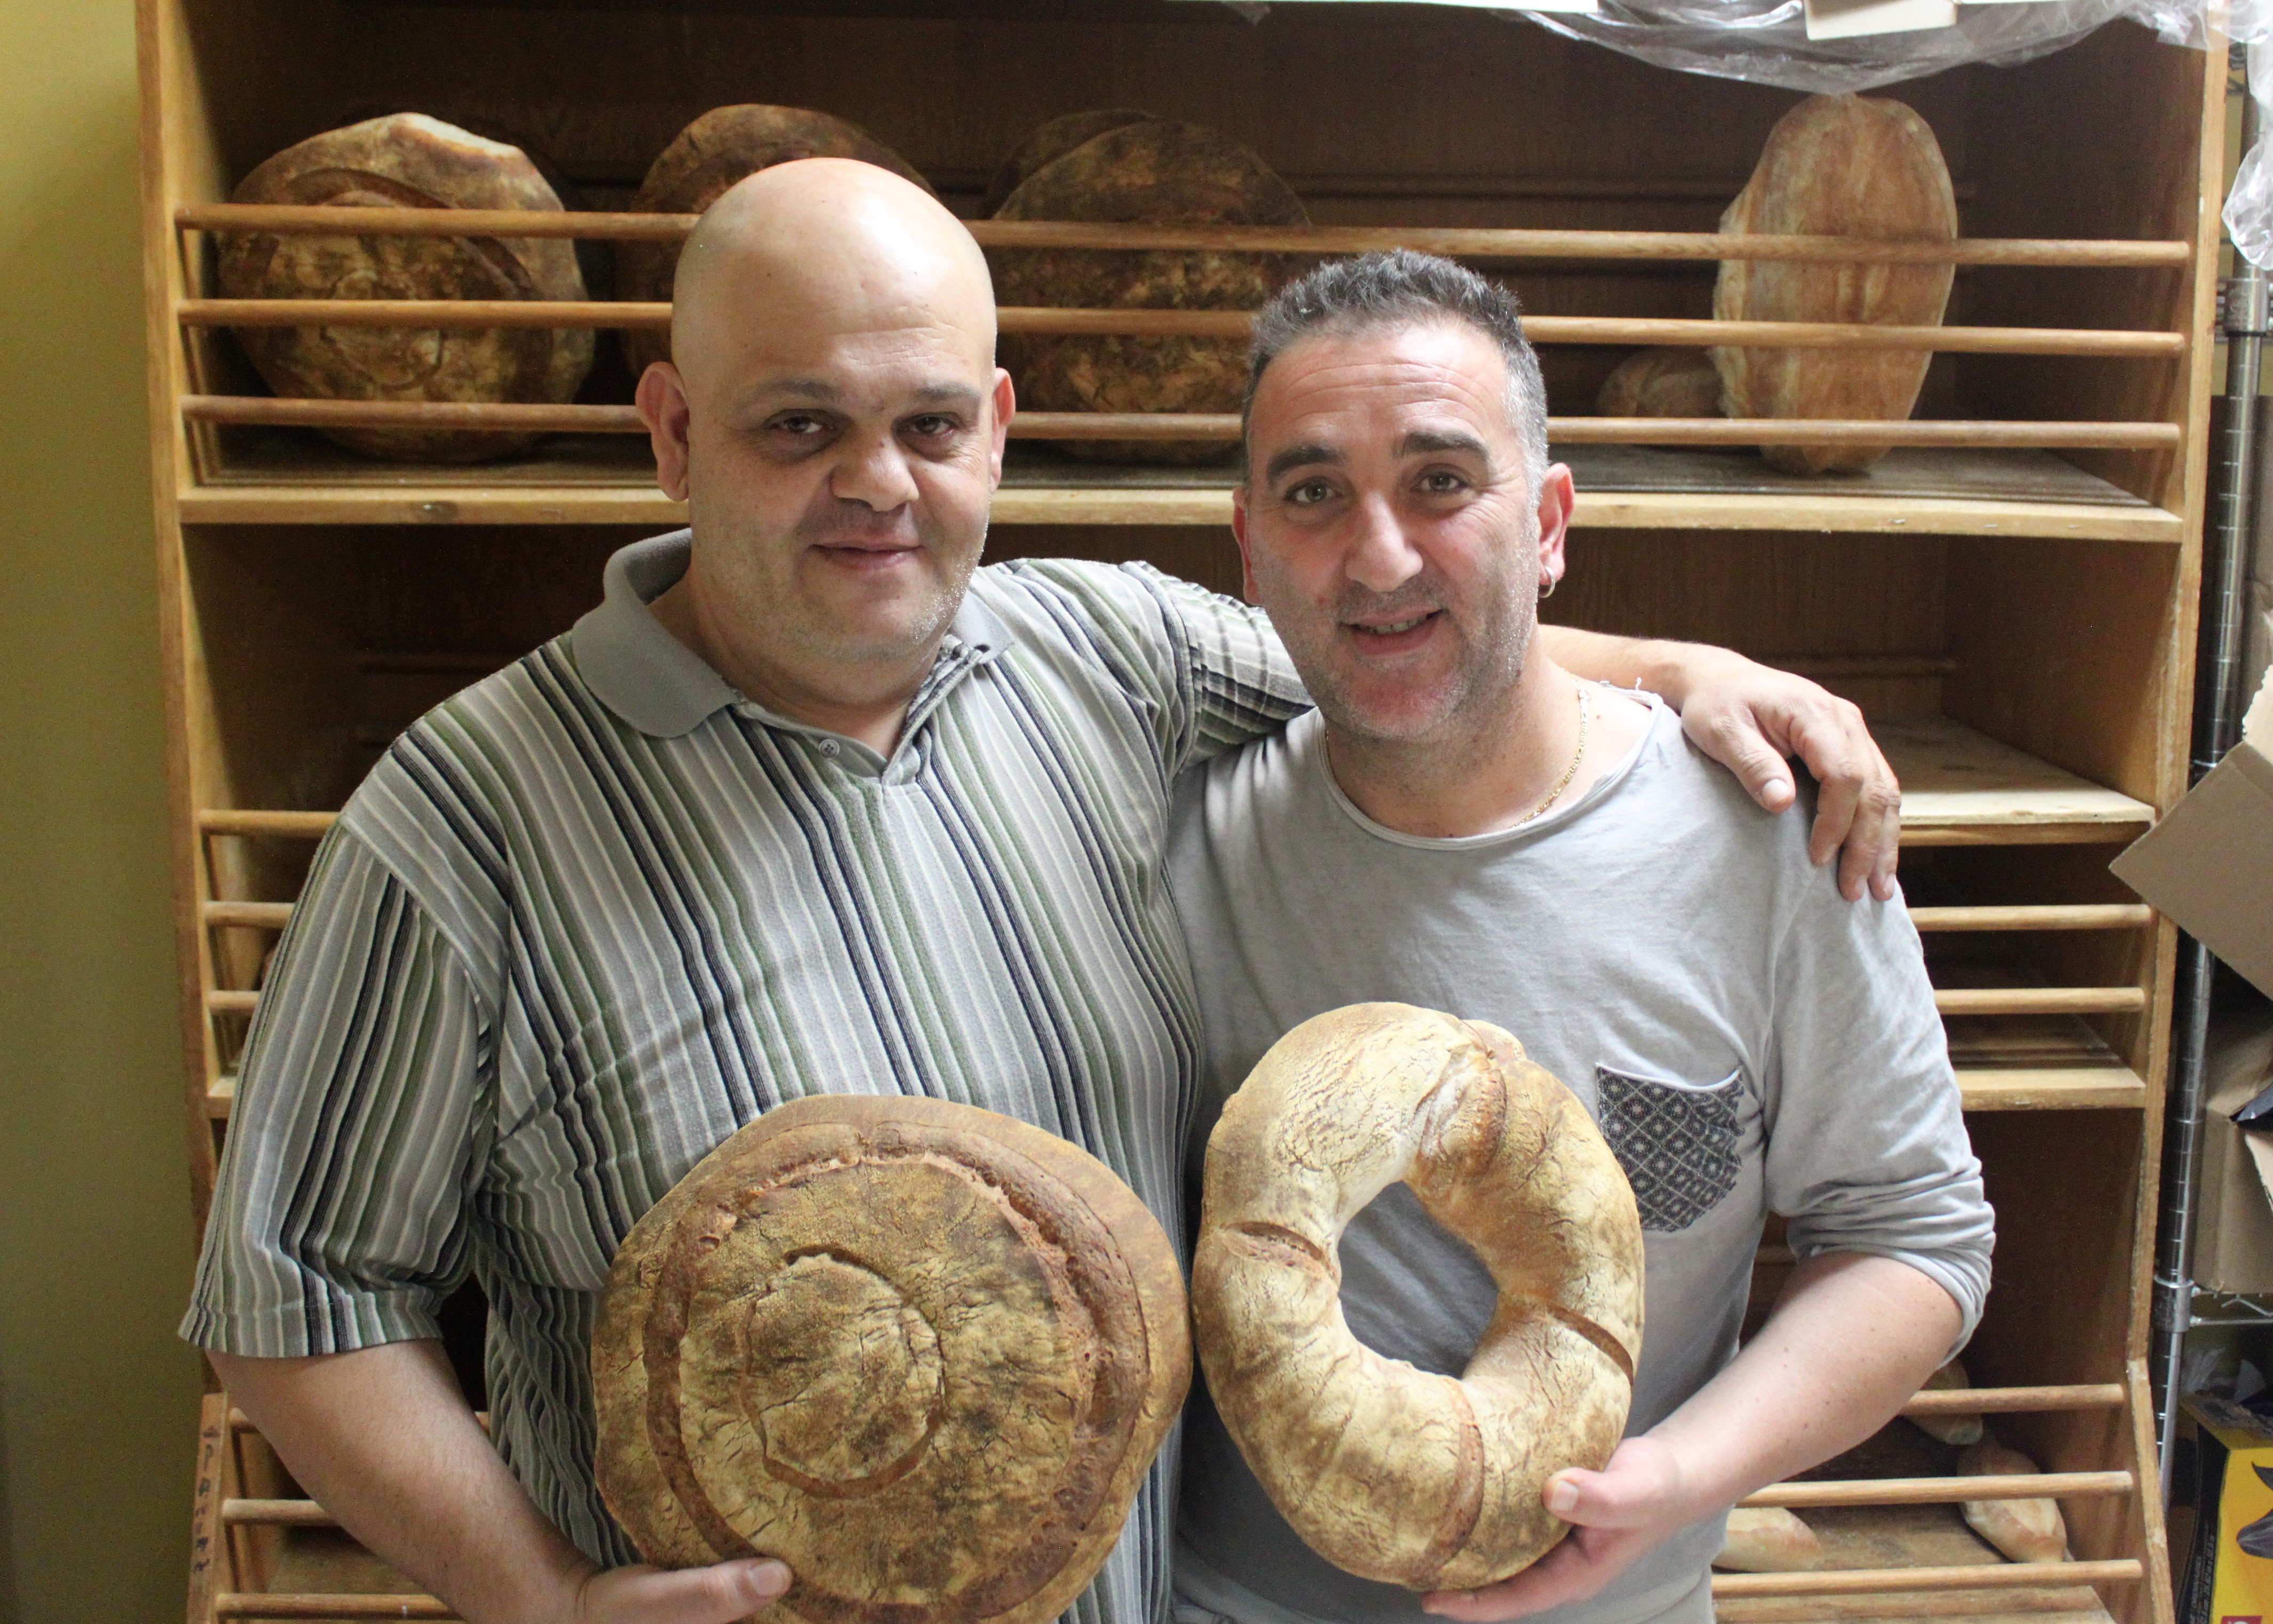 Massimo Marti, 43, and Ottavio Formica, 44, work from dusk until dawn making all assortments of bread. Source: Peter Rukavina